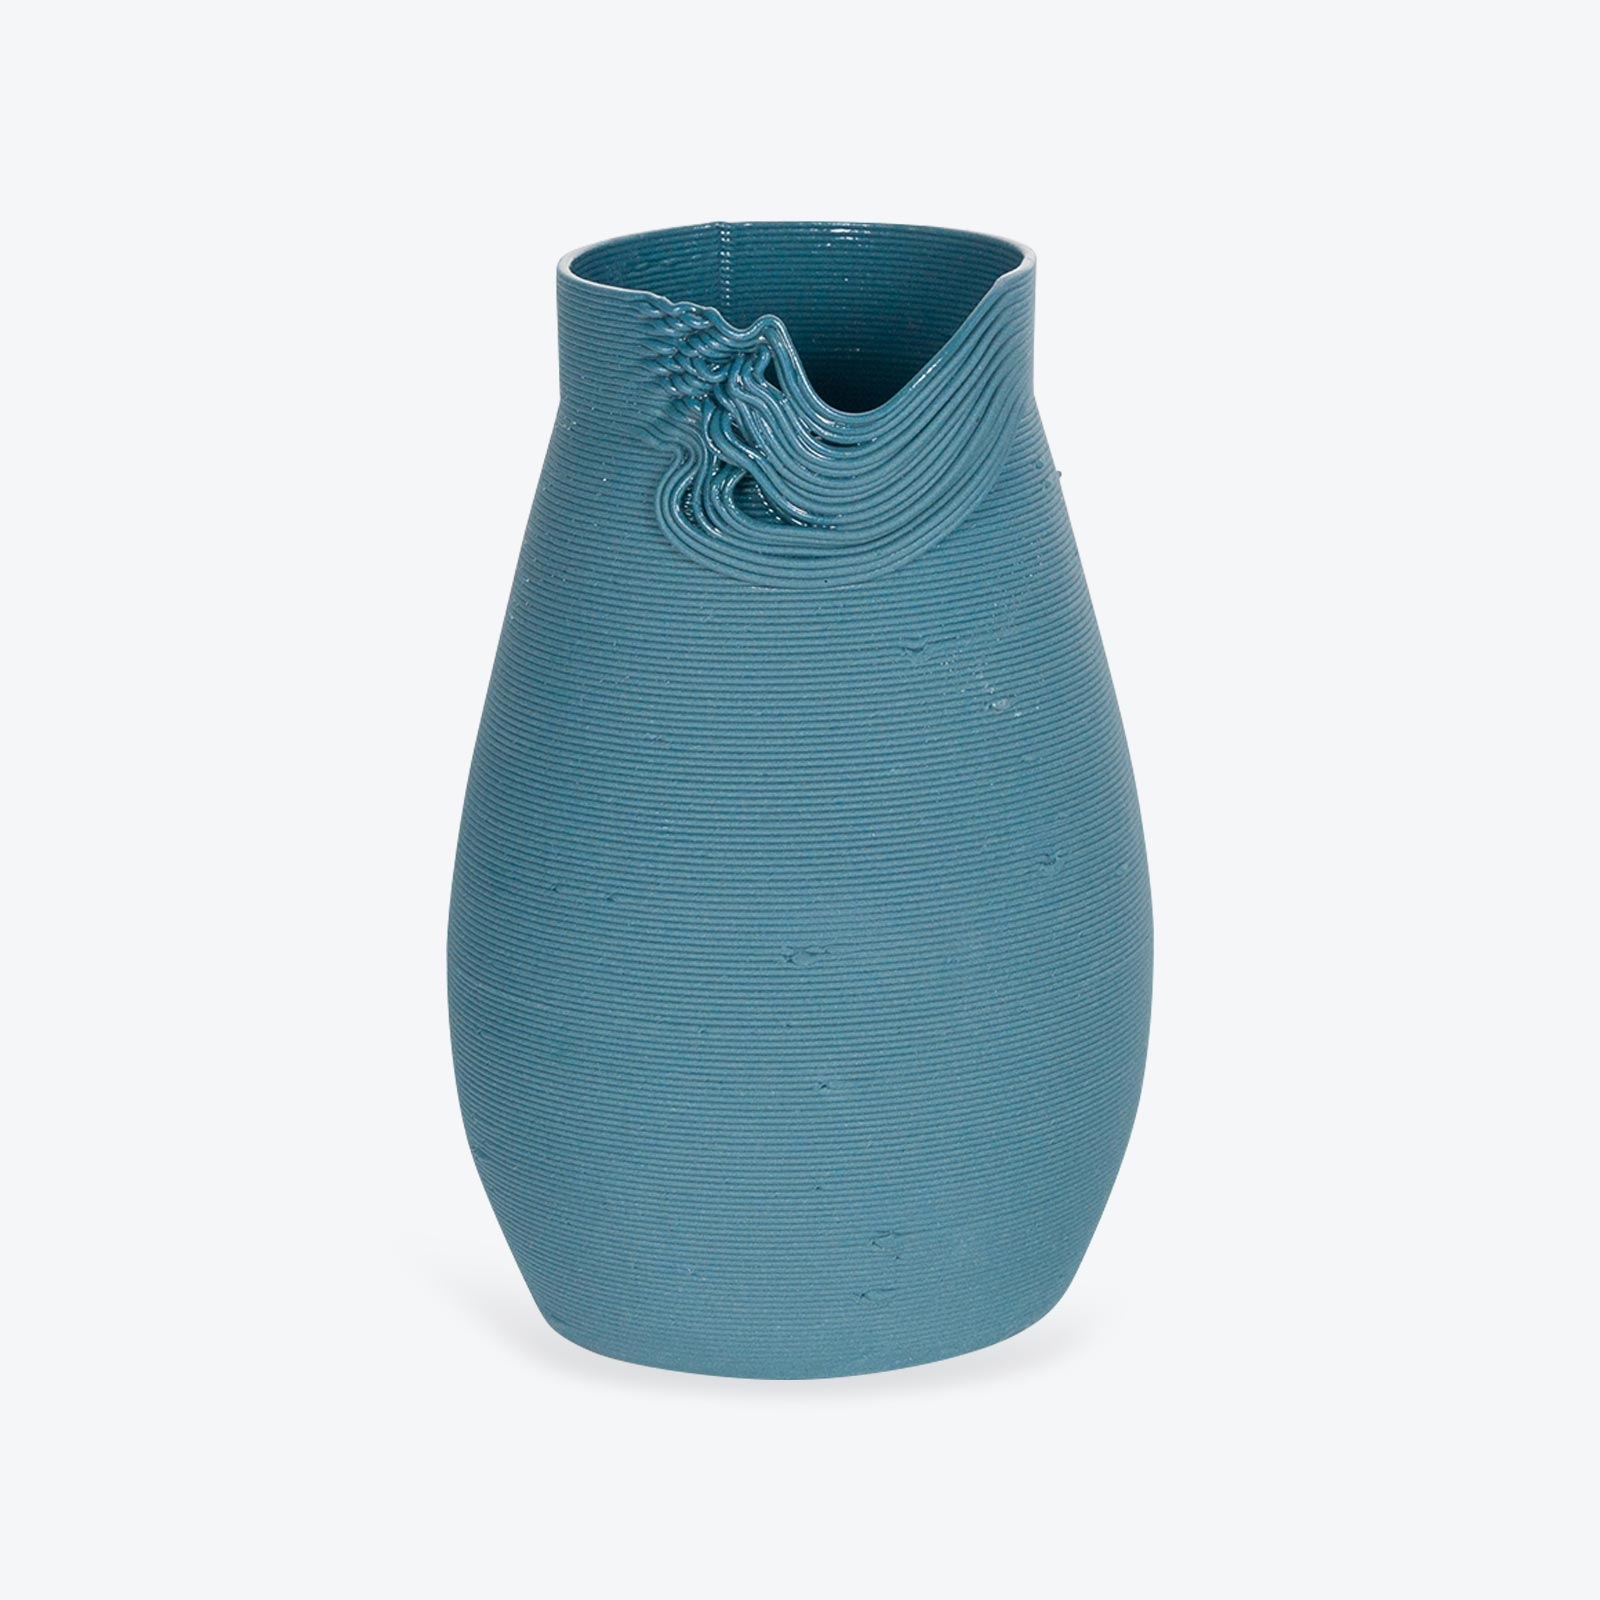 share re shapeways at all to blog really our porcelain goodbye new a current ceramics exclusive material vase archives printing excited we saying introducing colors printed offering